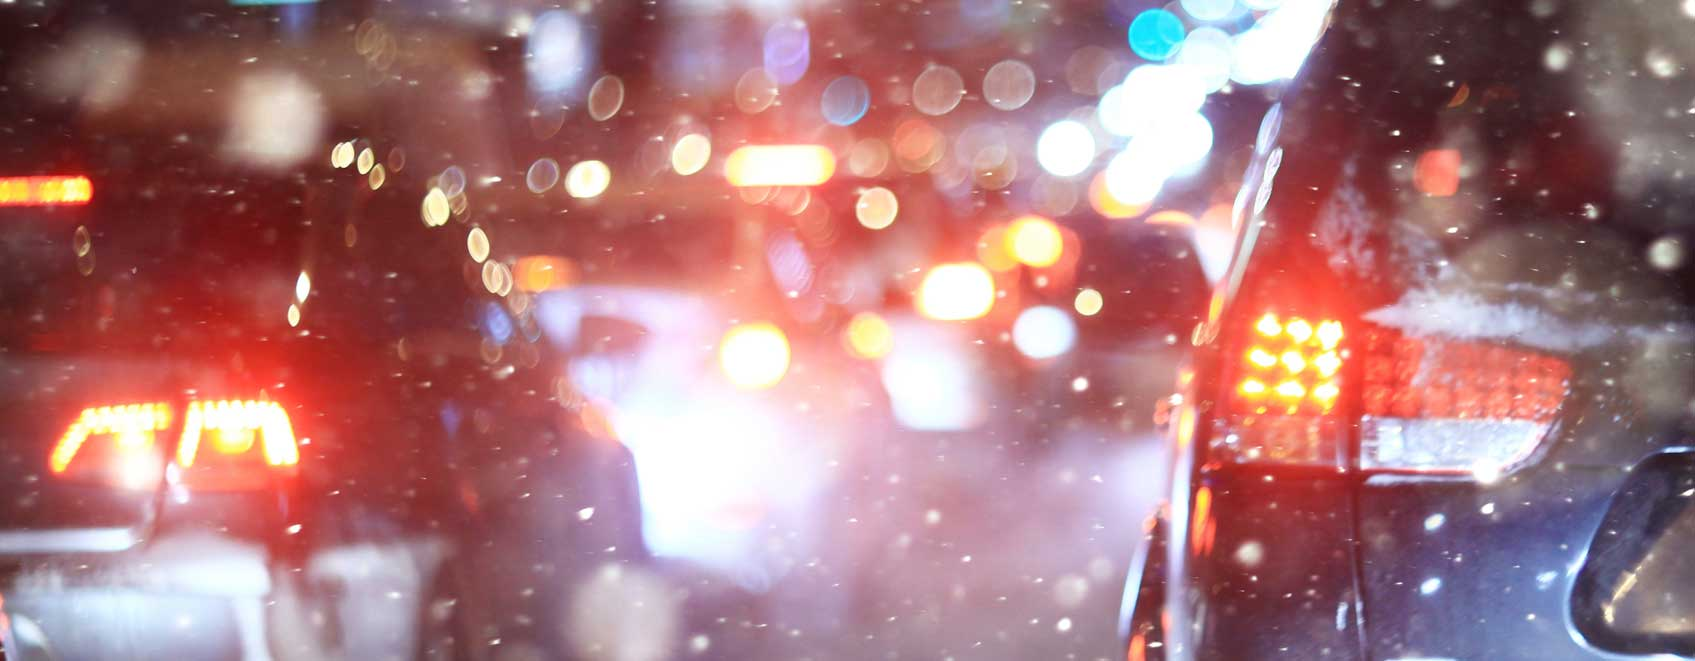 Cars stopped with brake lights on in a night time snow trying not to drive distracted.